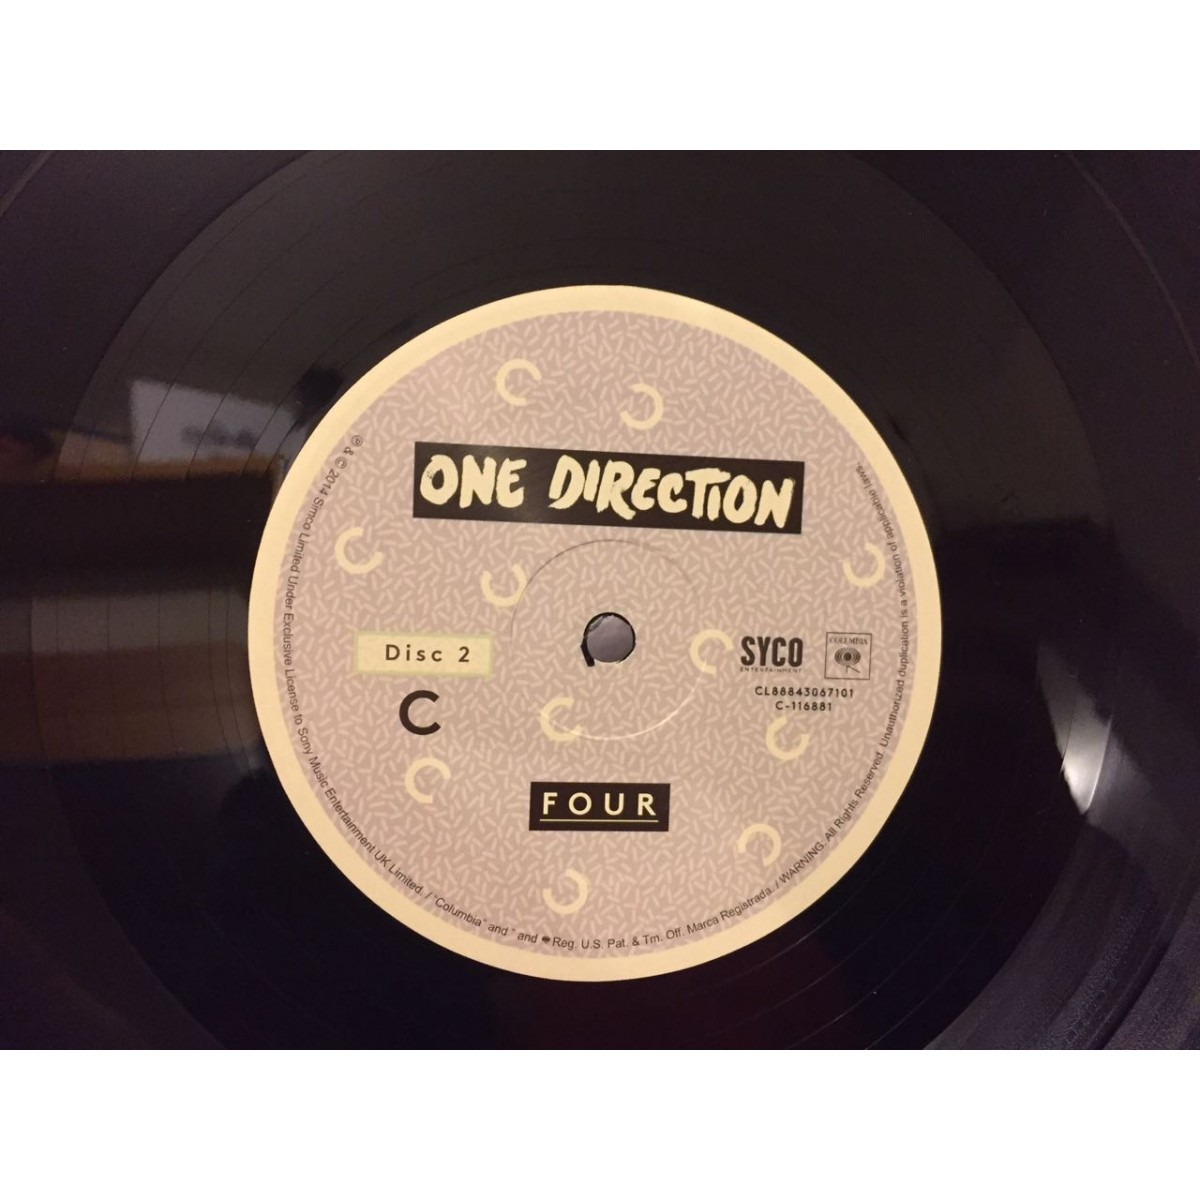 Lp One Direction Four SOMENTE DISCO 2